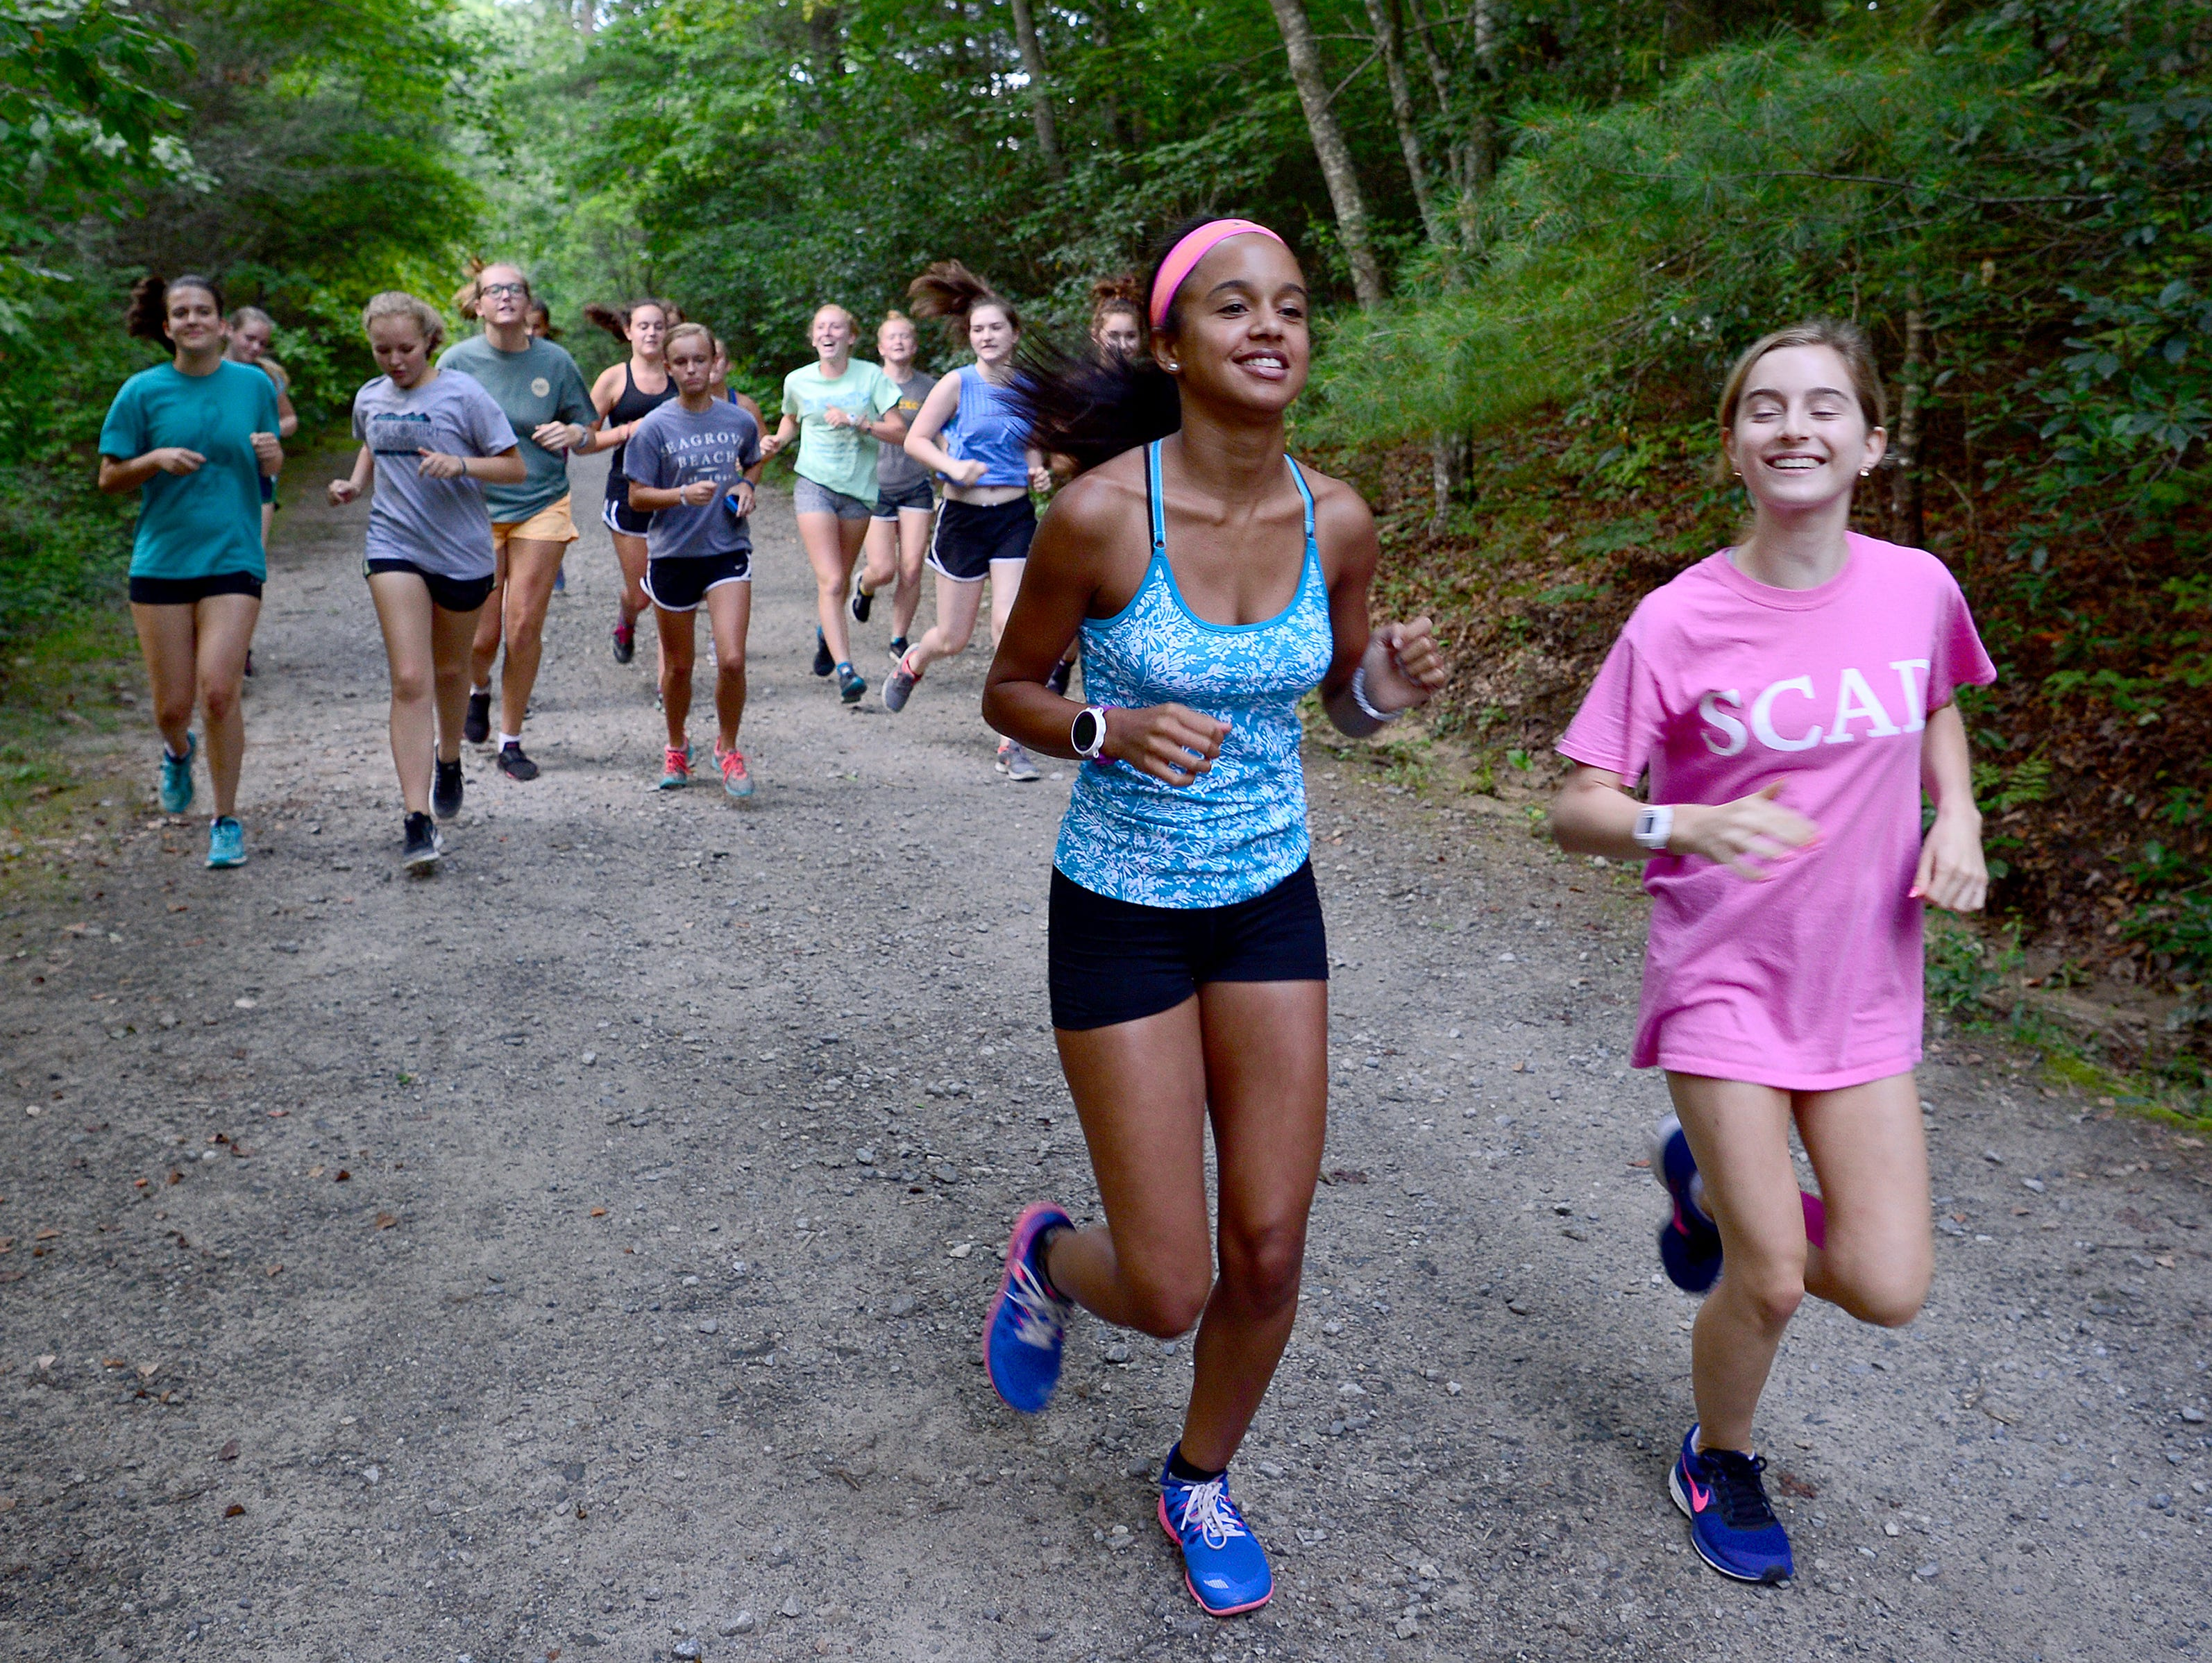 Roberson cross country runners Selah Scott, left, and Emily Fine, right, lead the pack as the team does a practice run at the North Carolina Arboretum on Thursday, Aug. 4, 2016.